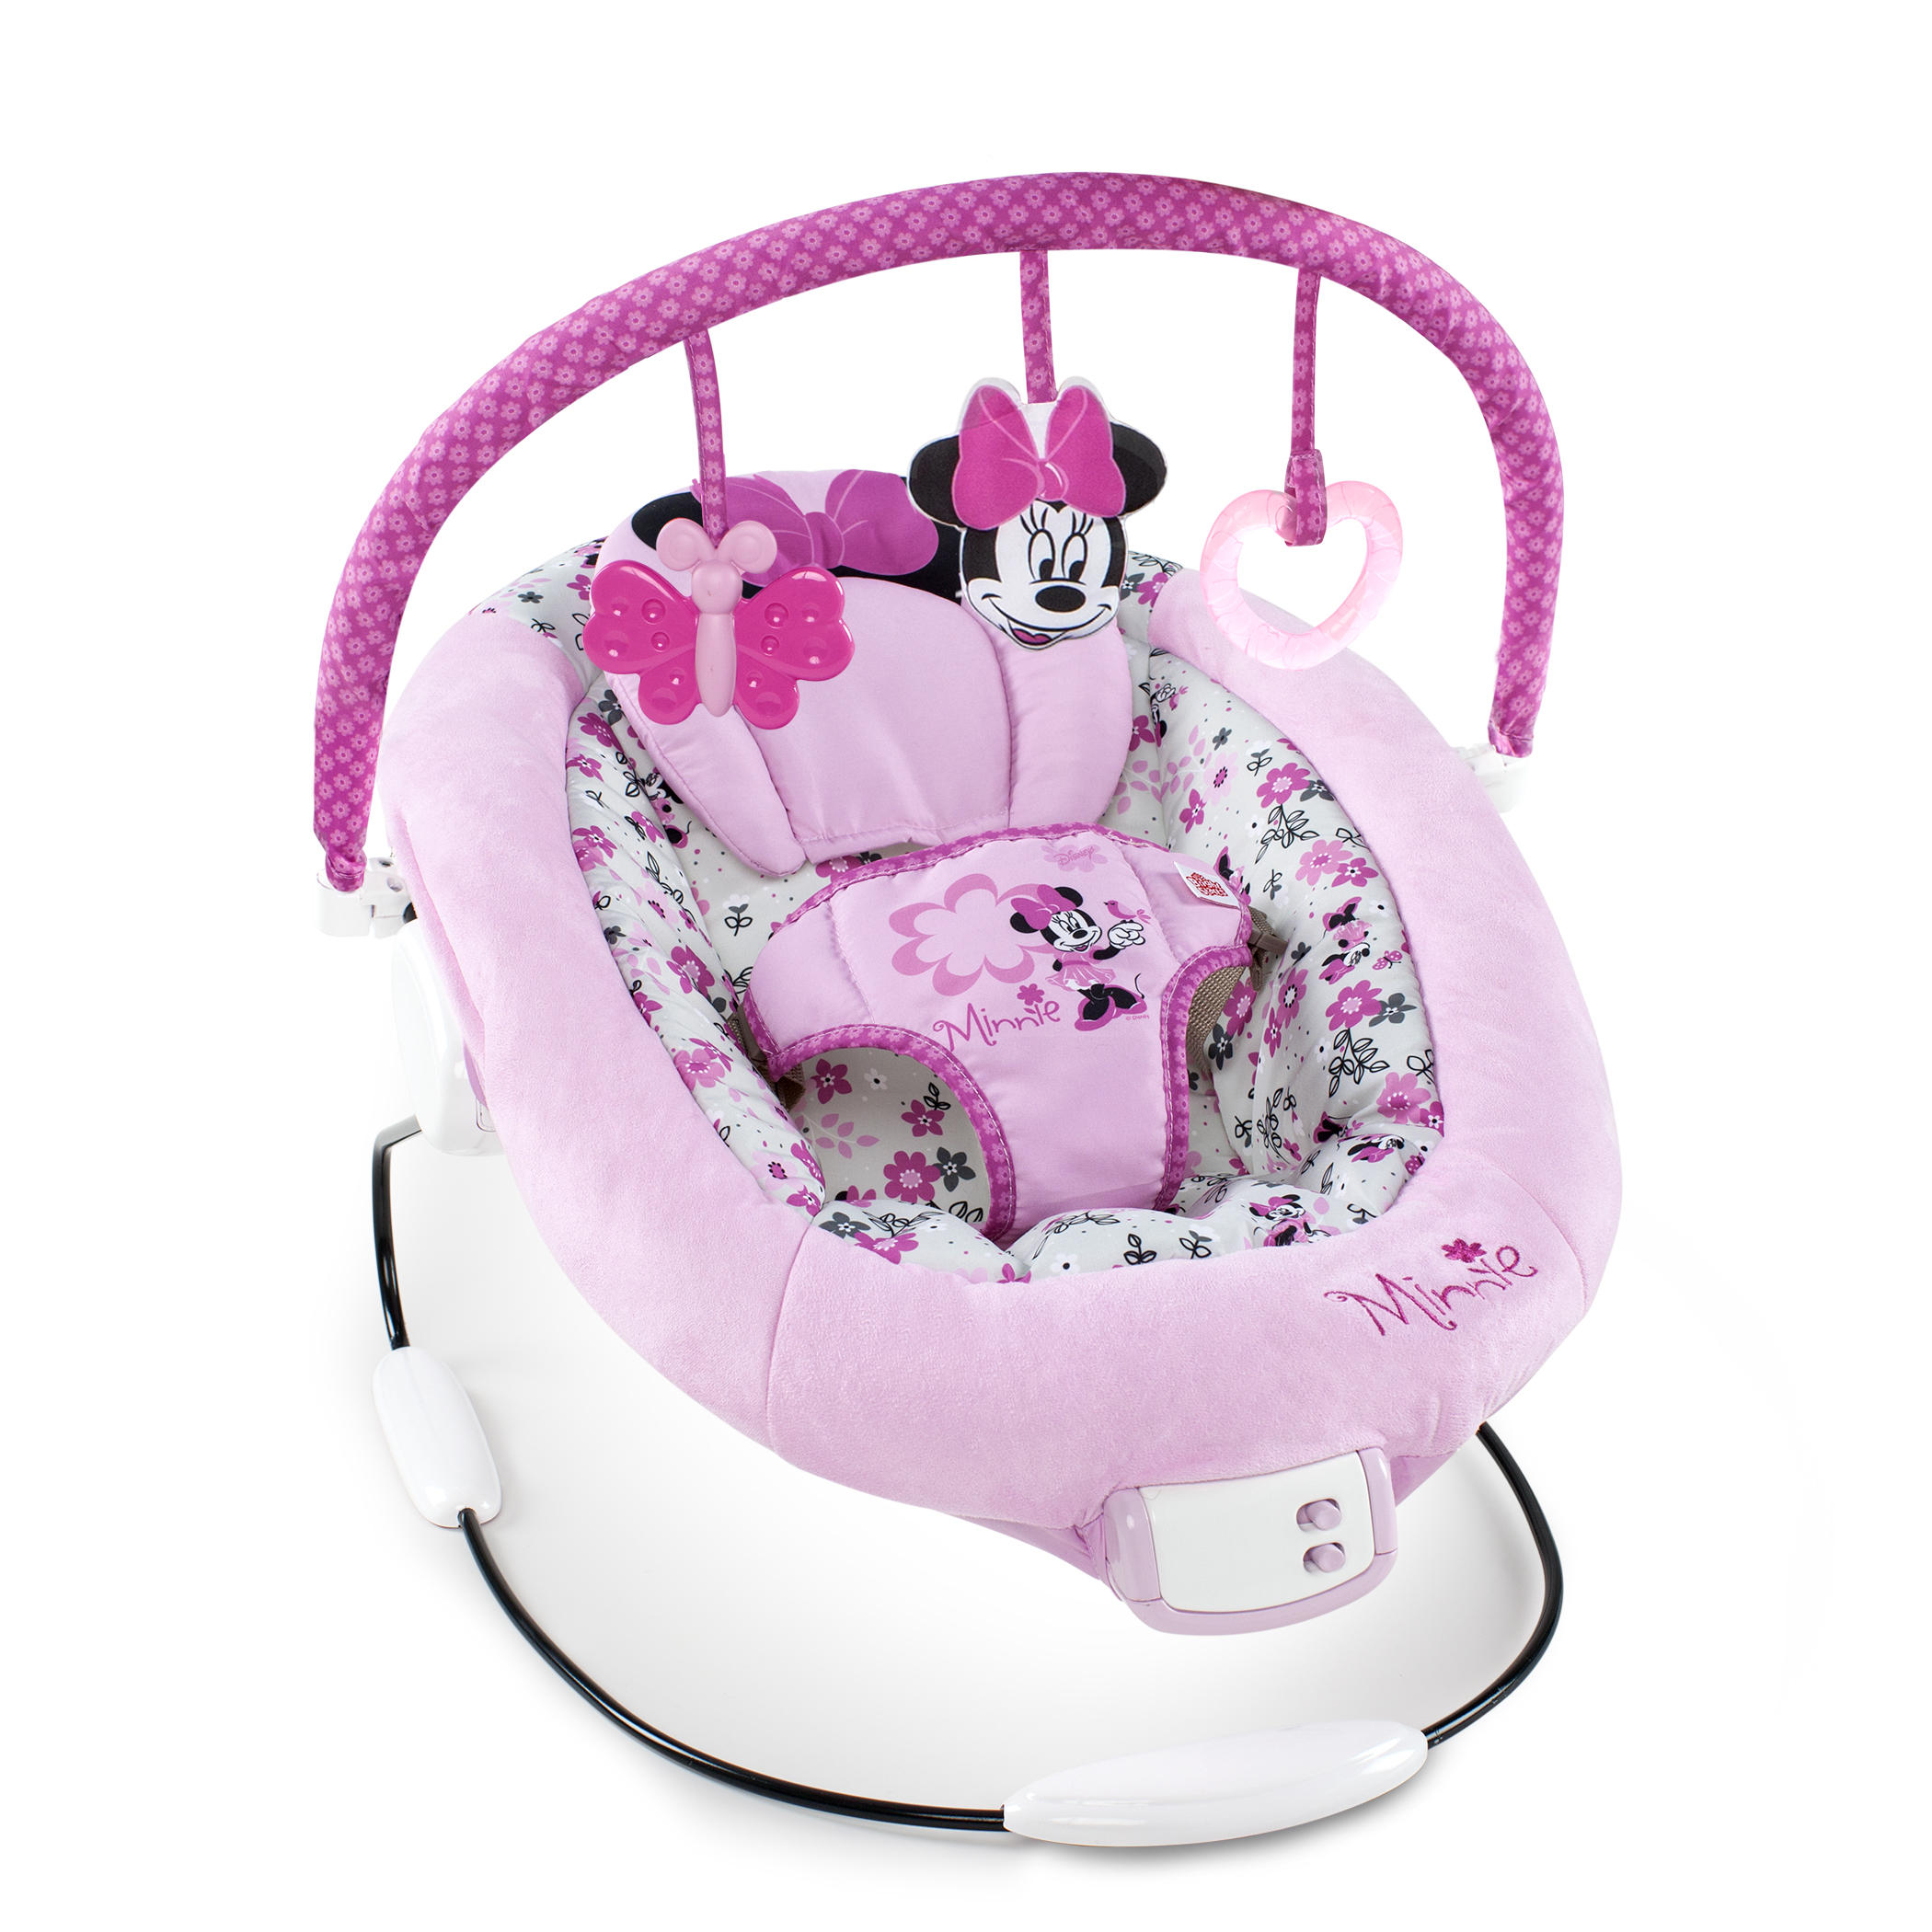 MINNIE MOUSE Garden Delights Bouncer